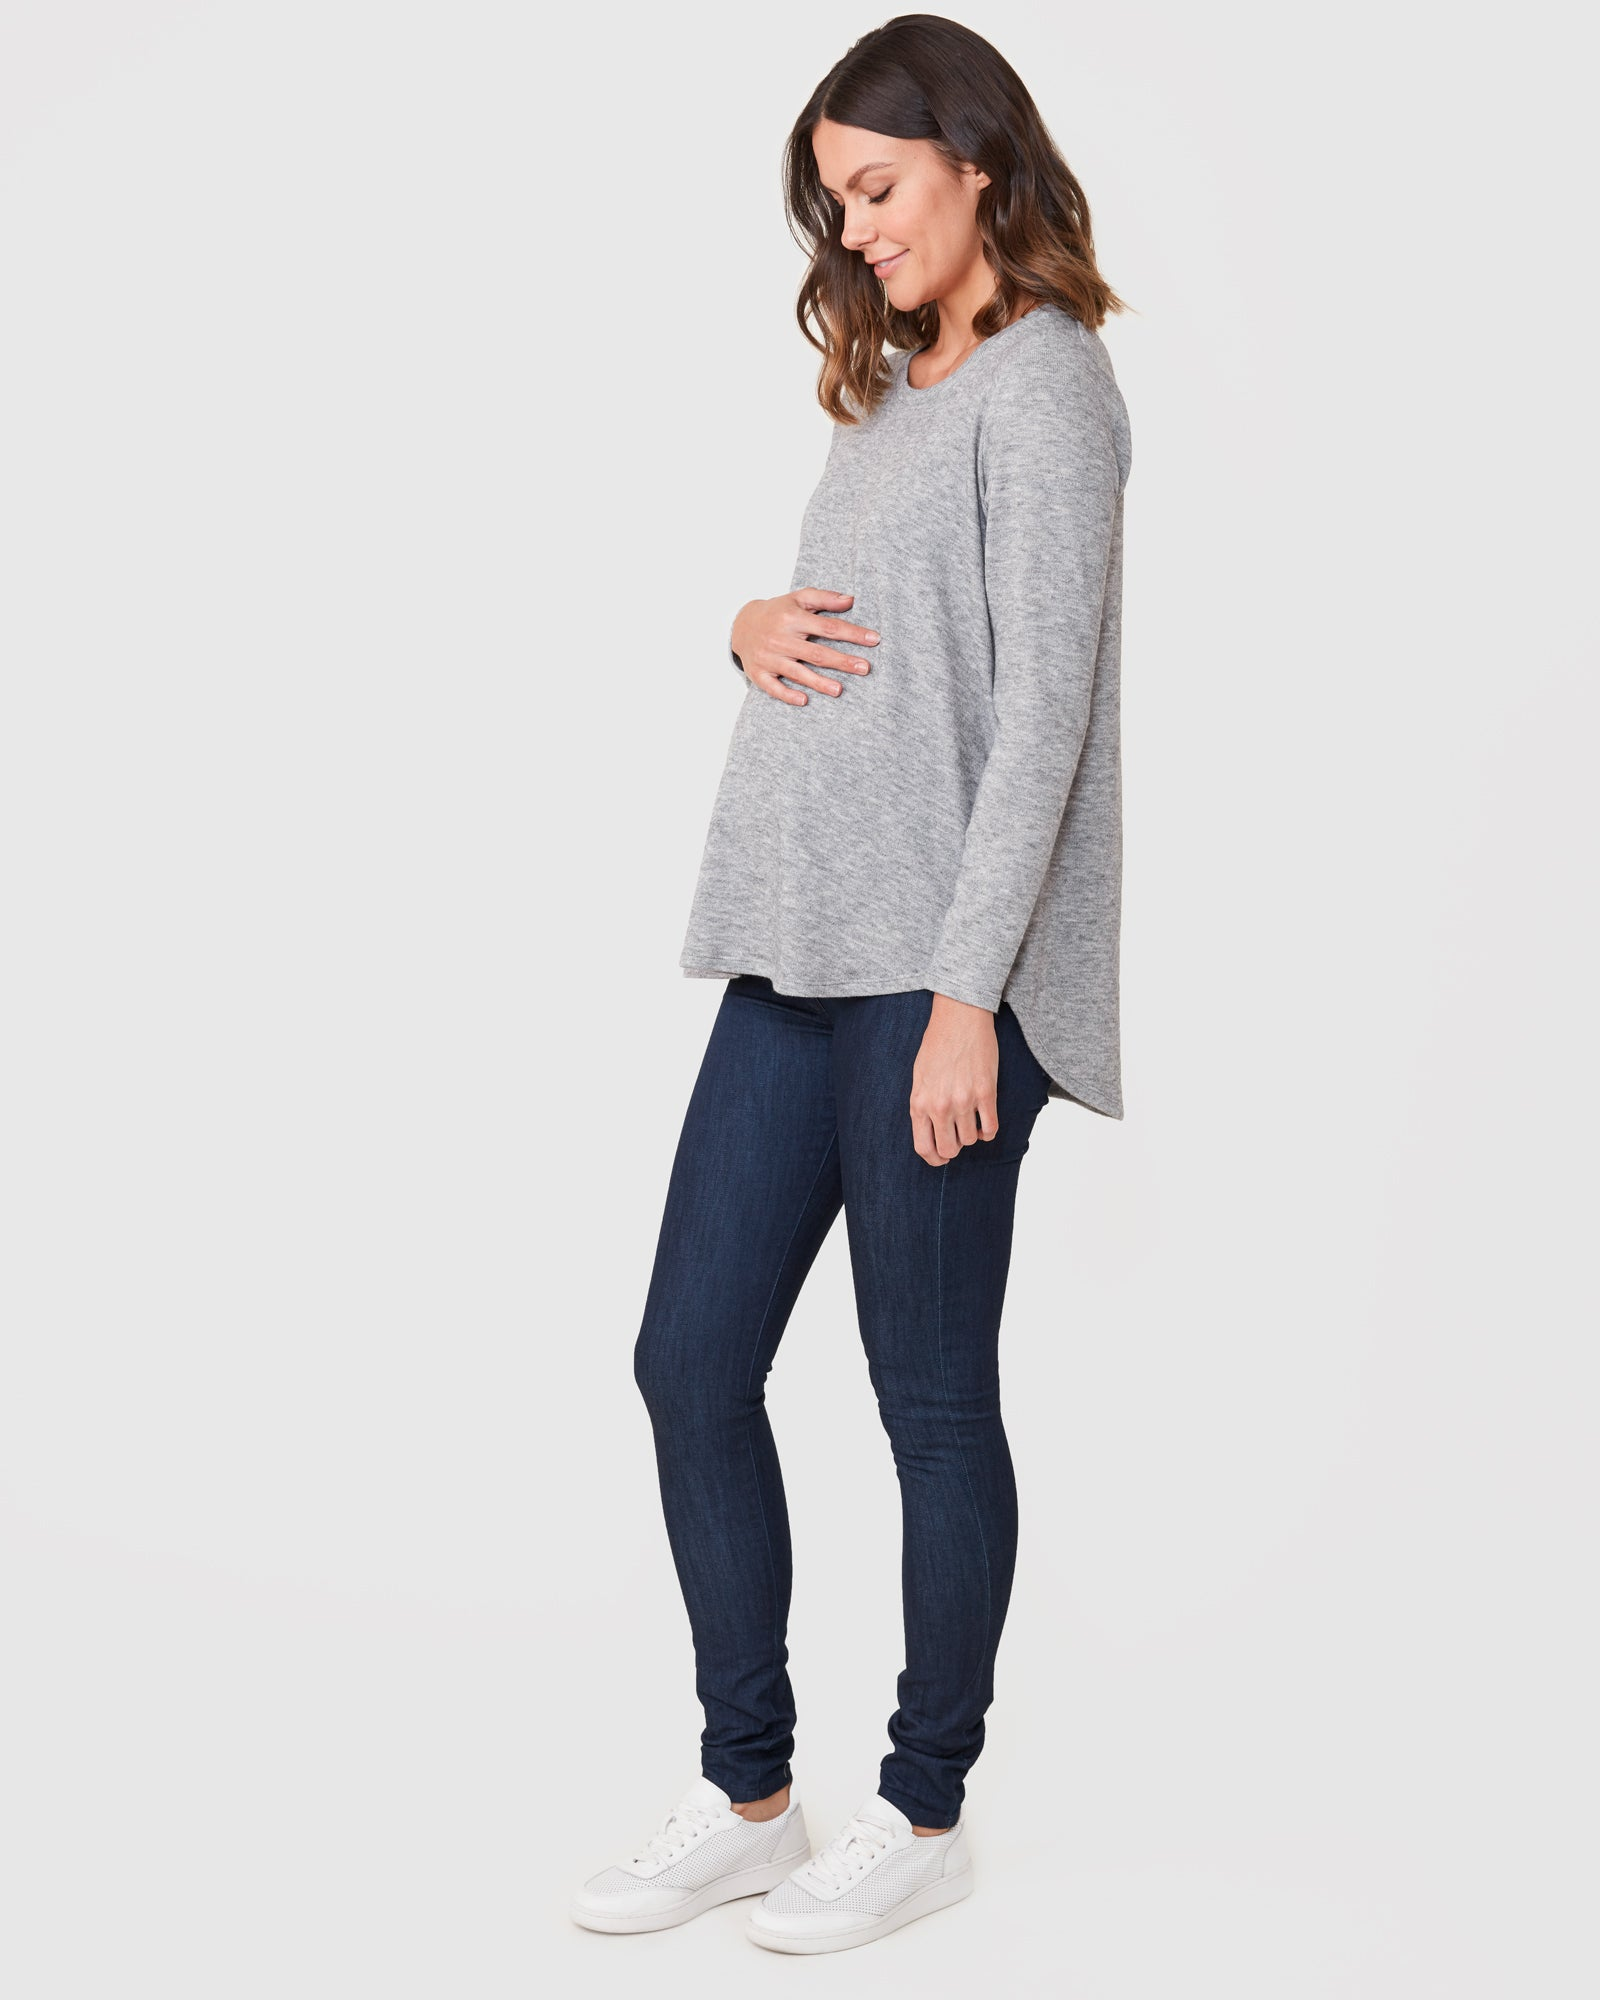 Hanna Nursing Top